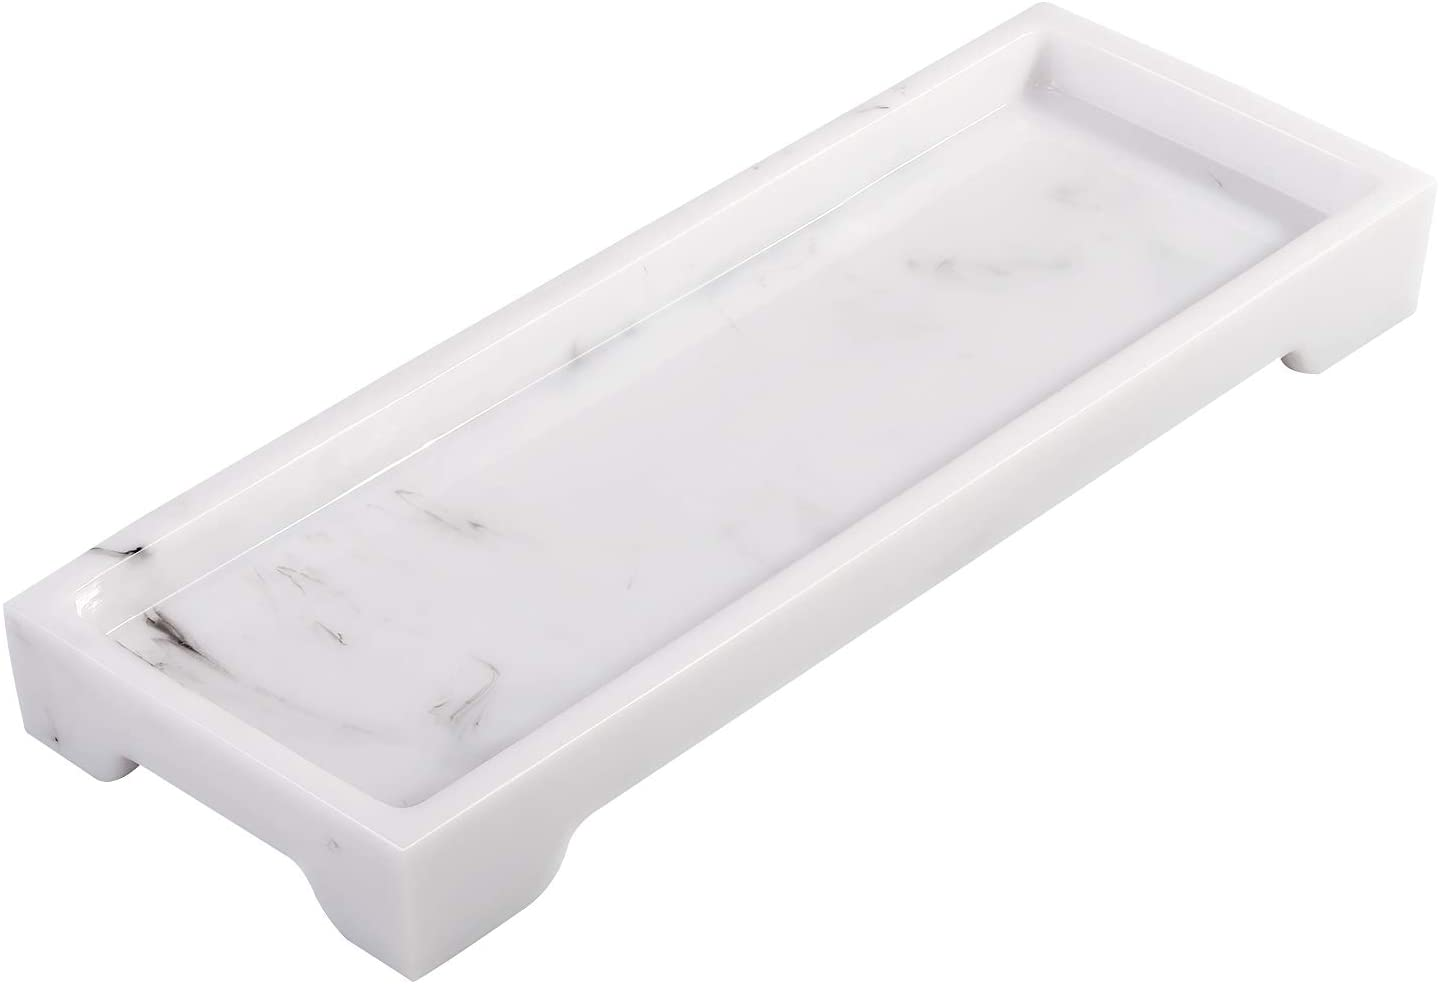 Lewondr Vanity Tray, 11.4 Inch Resin Decorative Tray Cosmetics Organizer Bathtub Bathroom Catchall Countertop Closet Dresser Storage Tray for Arranging Perfume Jewelry Toiletry Brushes - Ink White